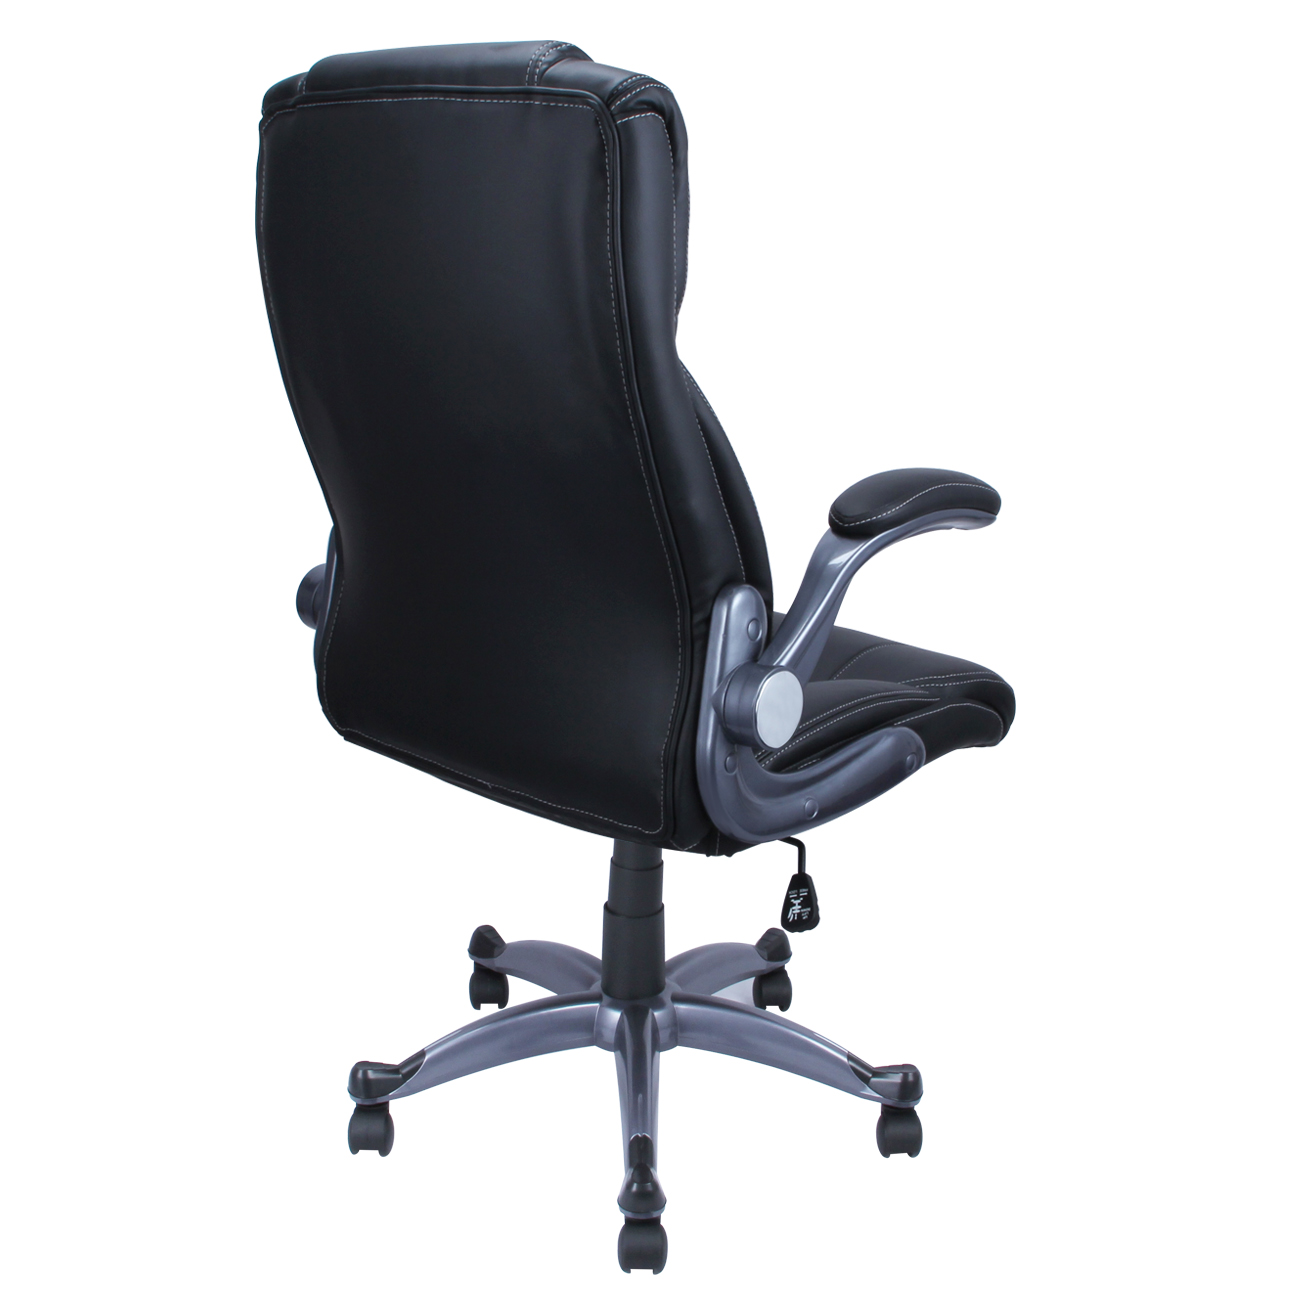 pu leather black modern ergonomic executive computer desk office chair study. Black Bedroom Furniture Sets. Home Design Ideas